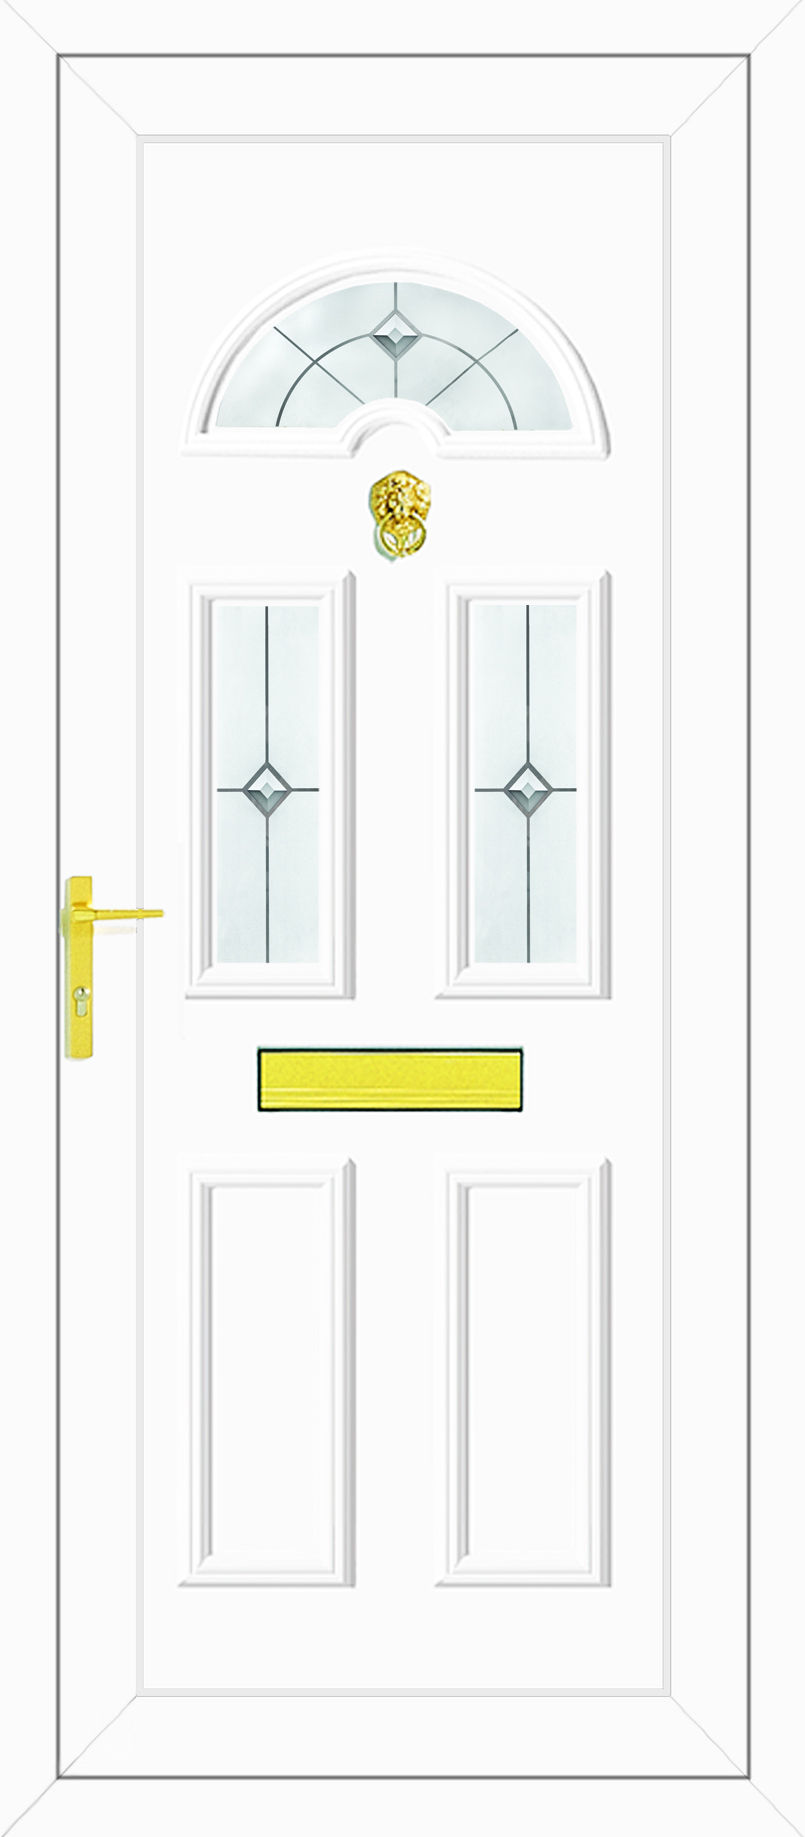 Carter Three Aspiration (Resin Sandblast) UPVC Front Door | 805 x 1837 · 348 kB · jpeg